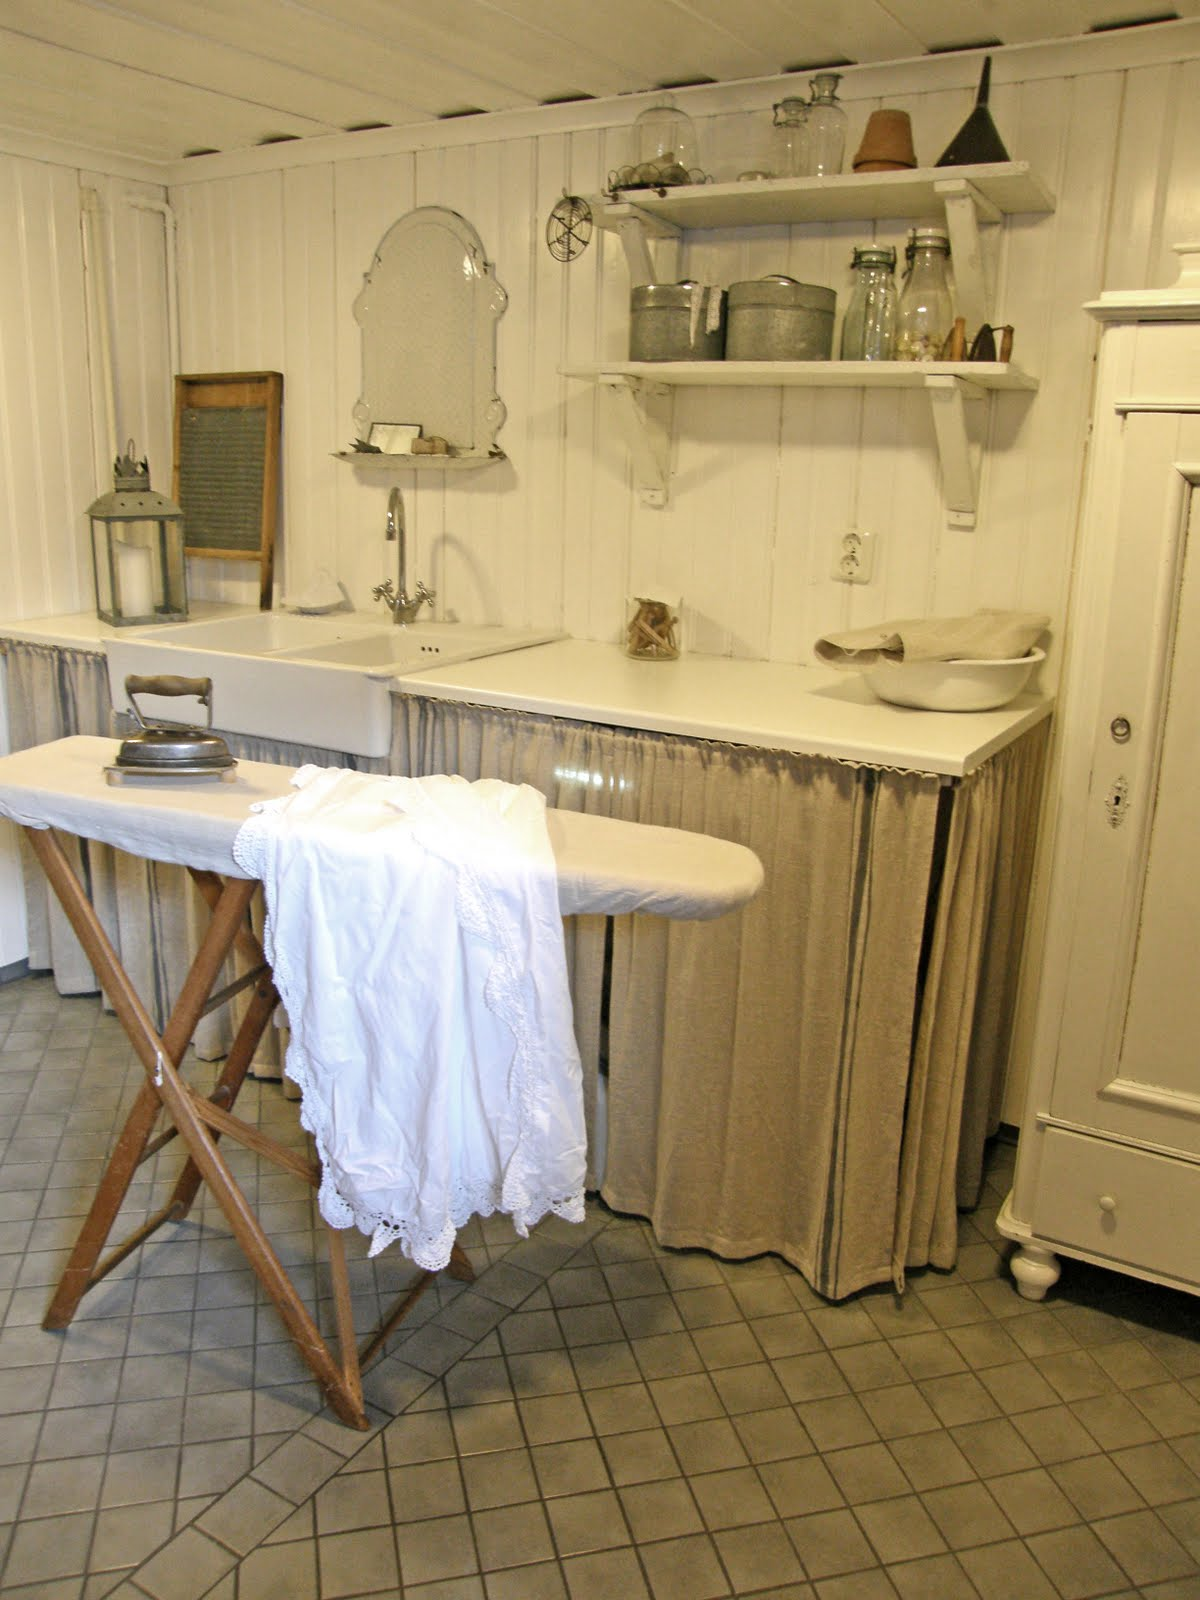 Primitive laundry room ideas on pinterest rustic for Country laundry room curtains